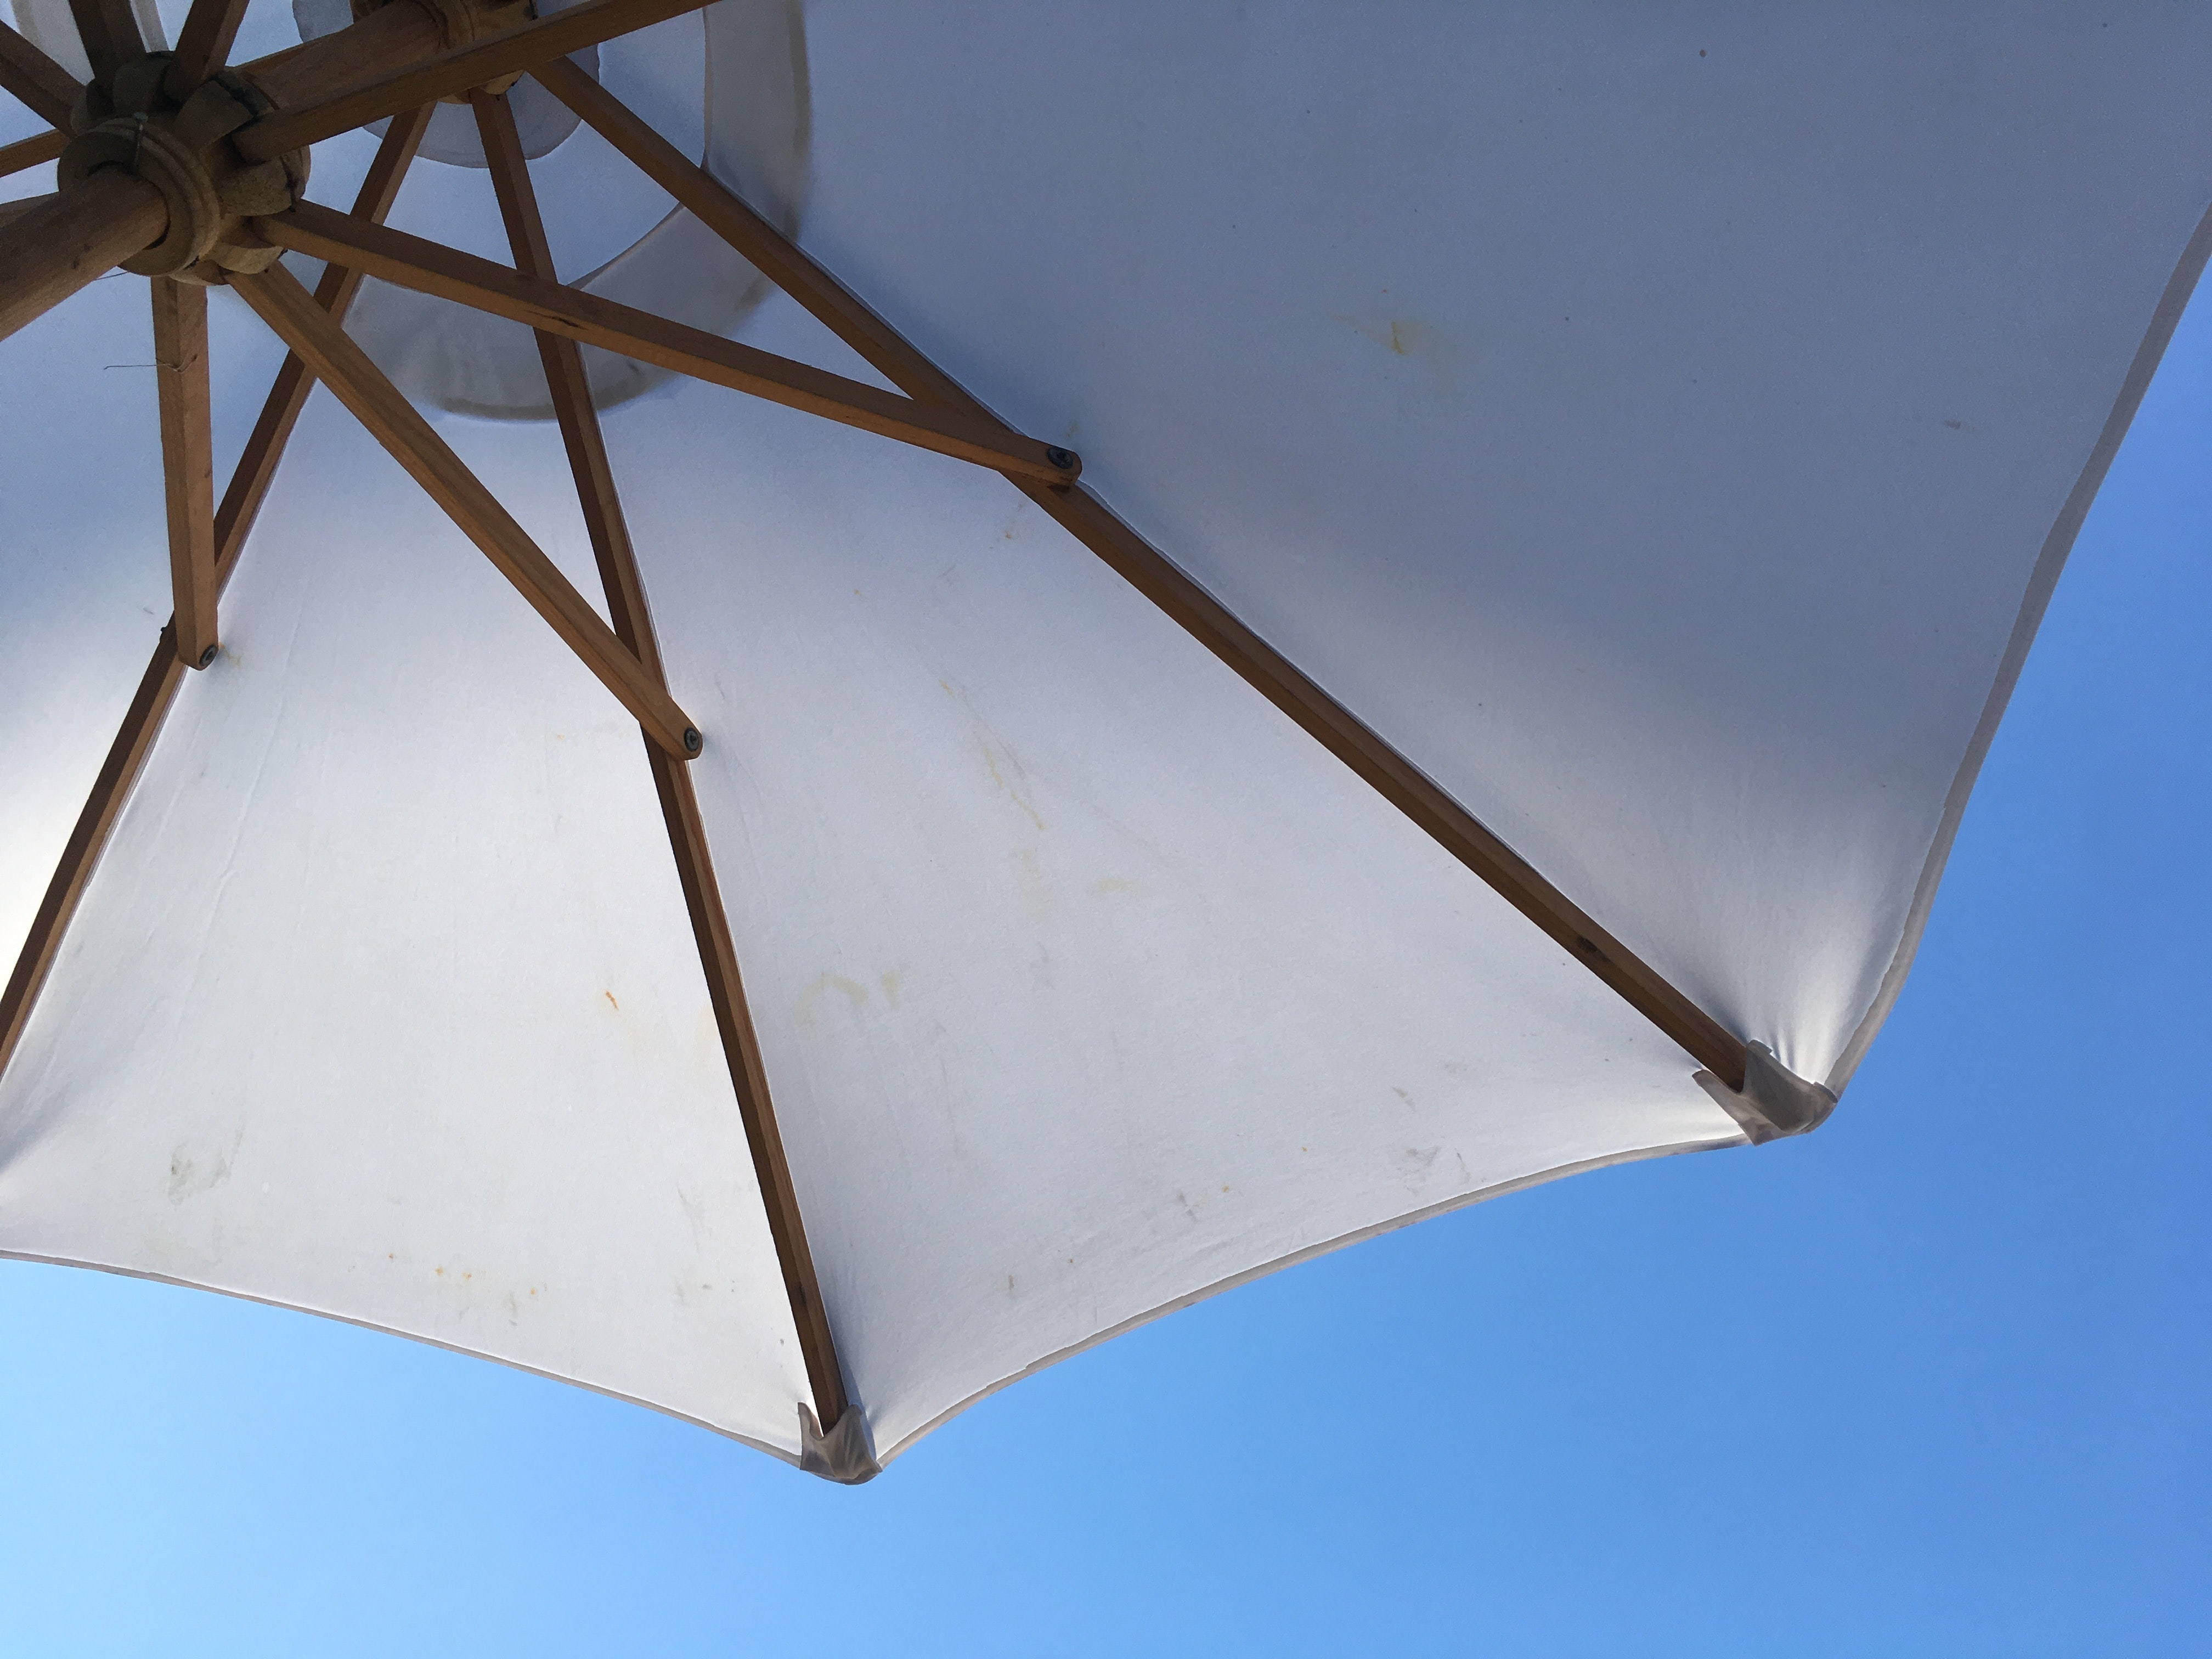 A low-angle shot of a white parasol against a blue sky